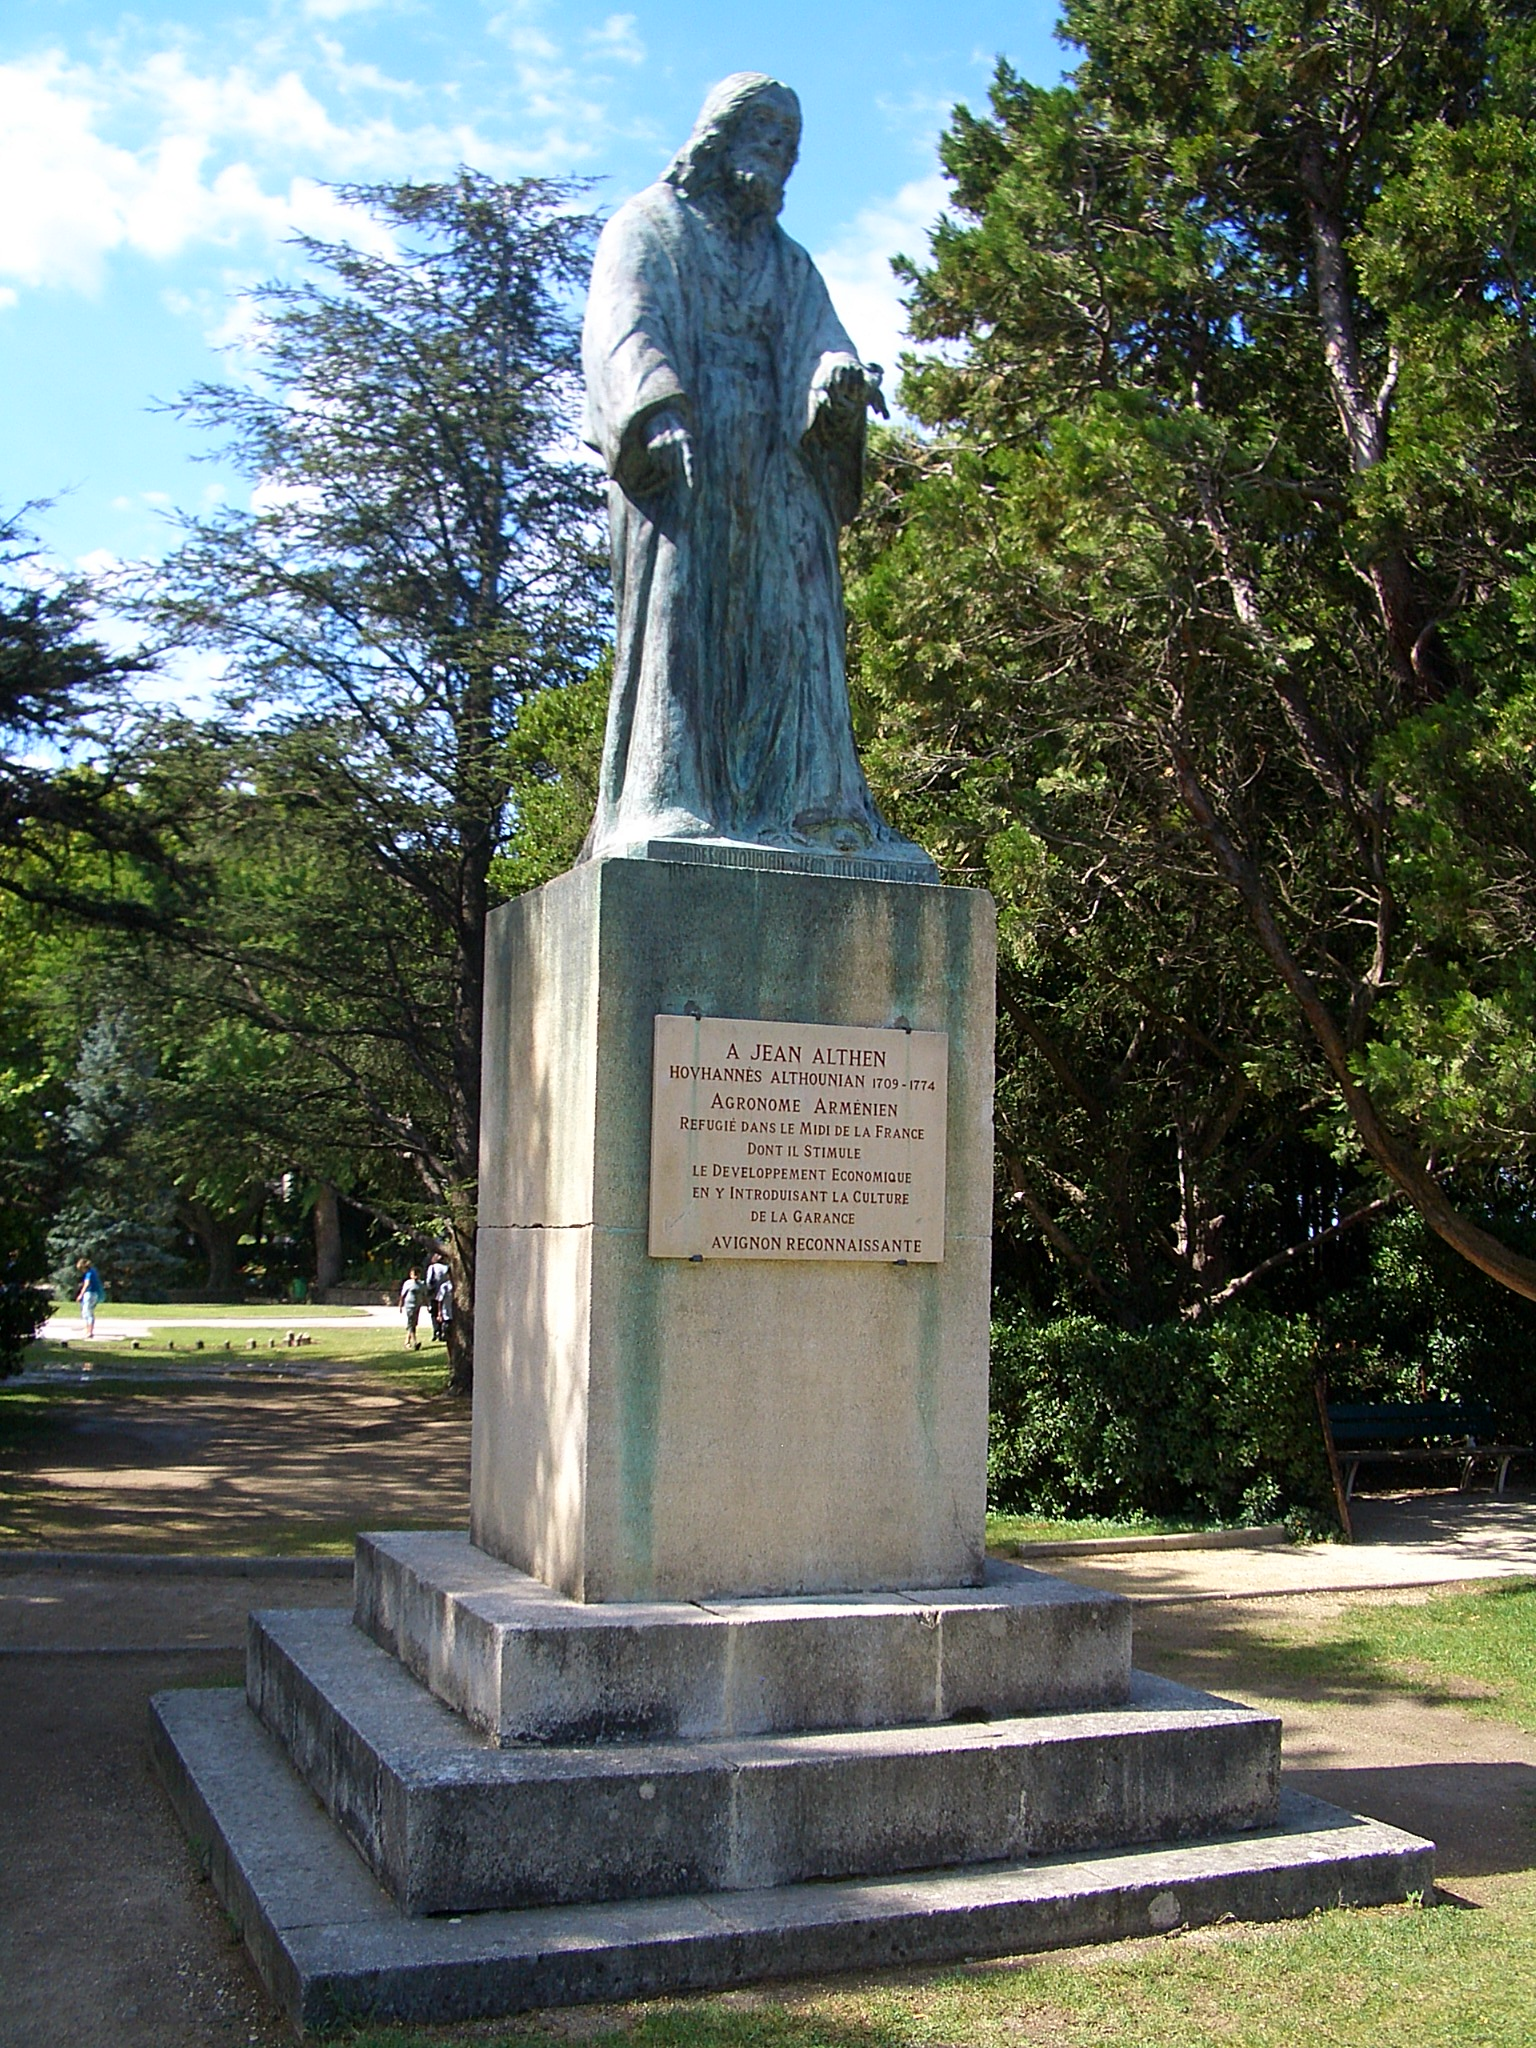 A statute in Avignon, a monument to Jean Althen – Hovhannes Althounian (1709-1774) – an Armenian agronomist who introduced a new dyeing technique, thereby boosting the economy in the south of France in the 18th century; a commune (district) of the country is named after him.